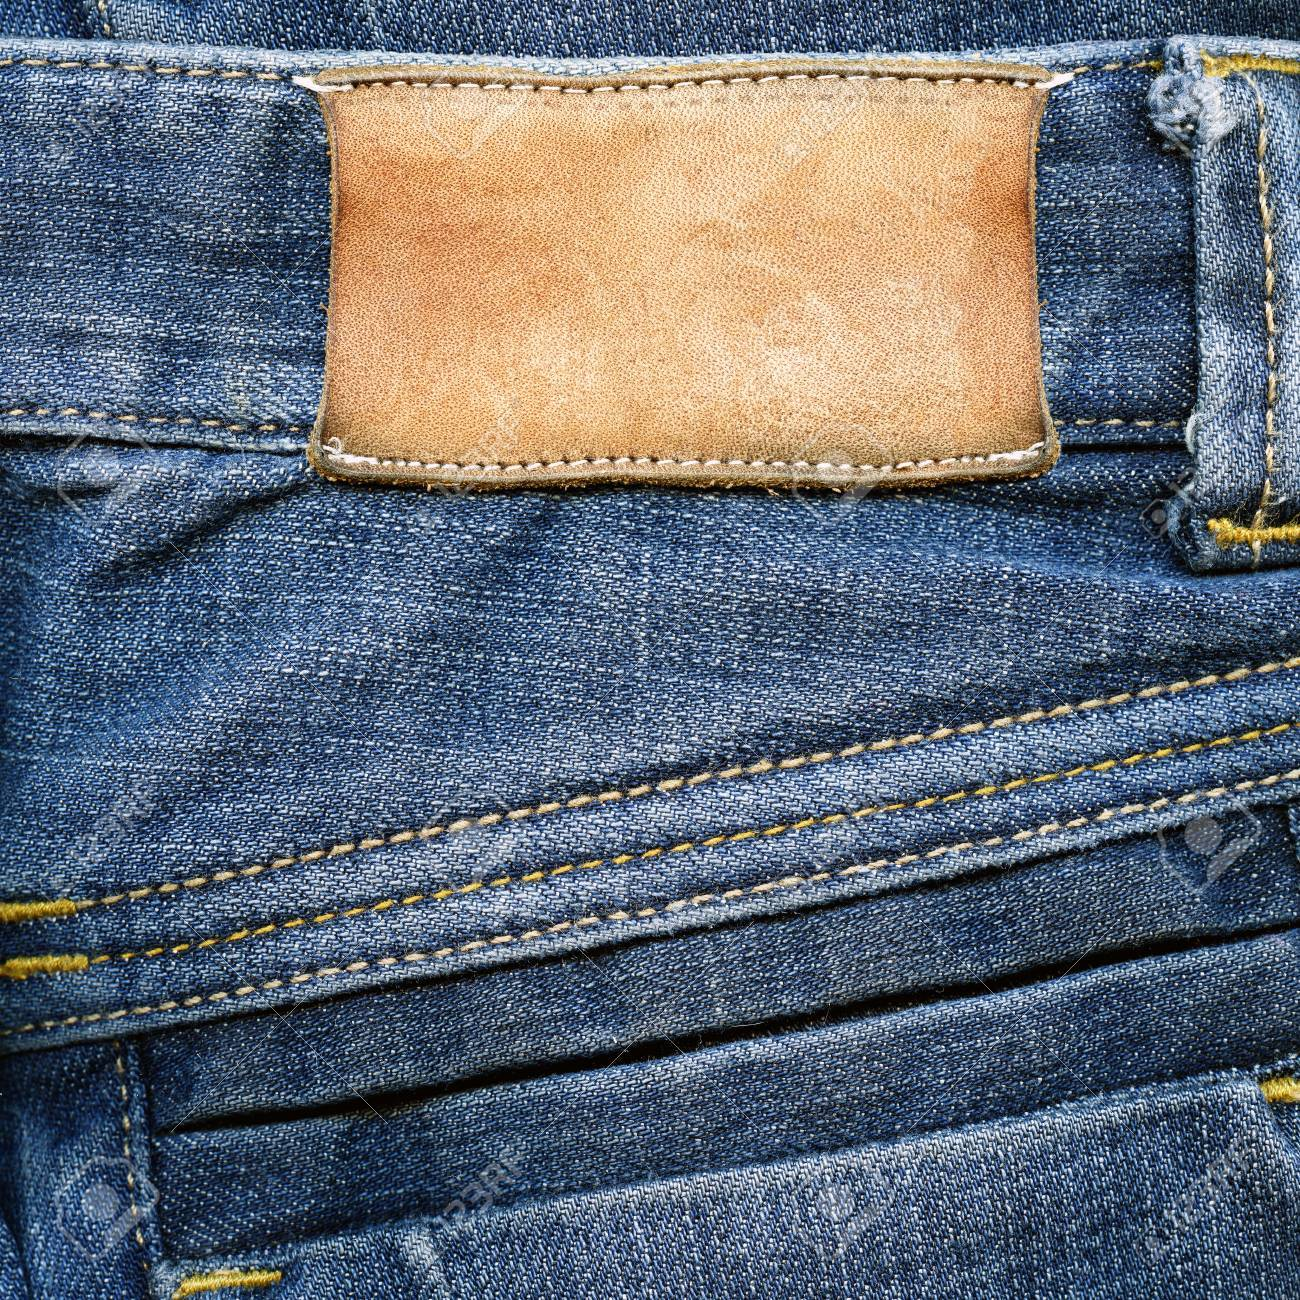 585761d54d29 Highly detailed closeup of blank grungy stained leather label on old blue  jeans with a lot